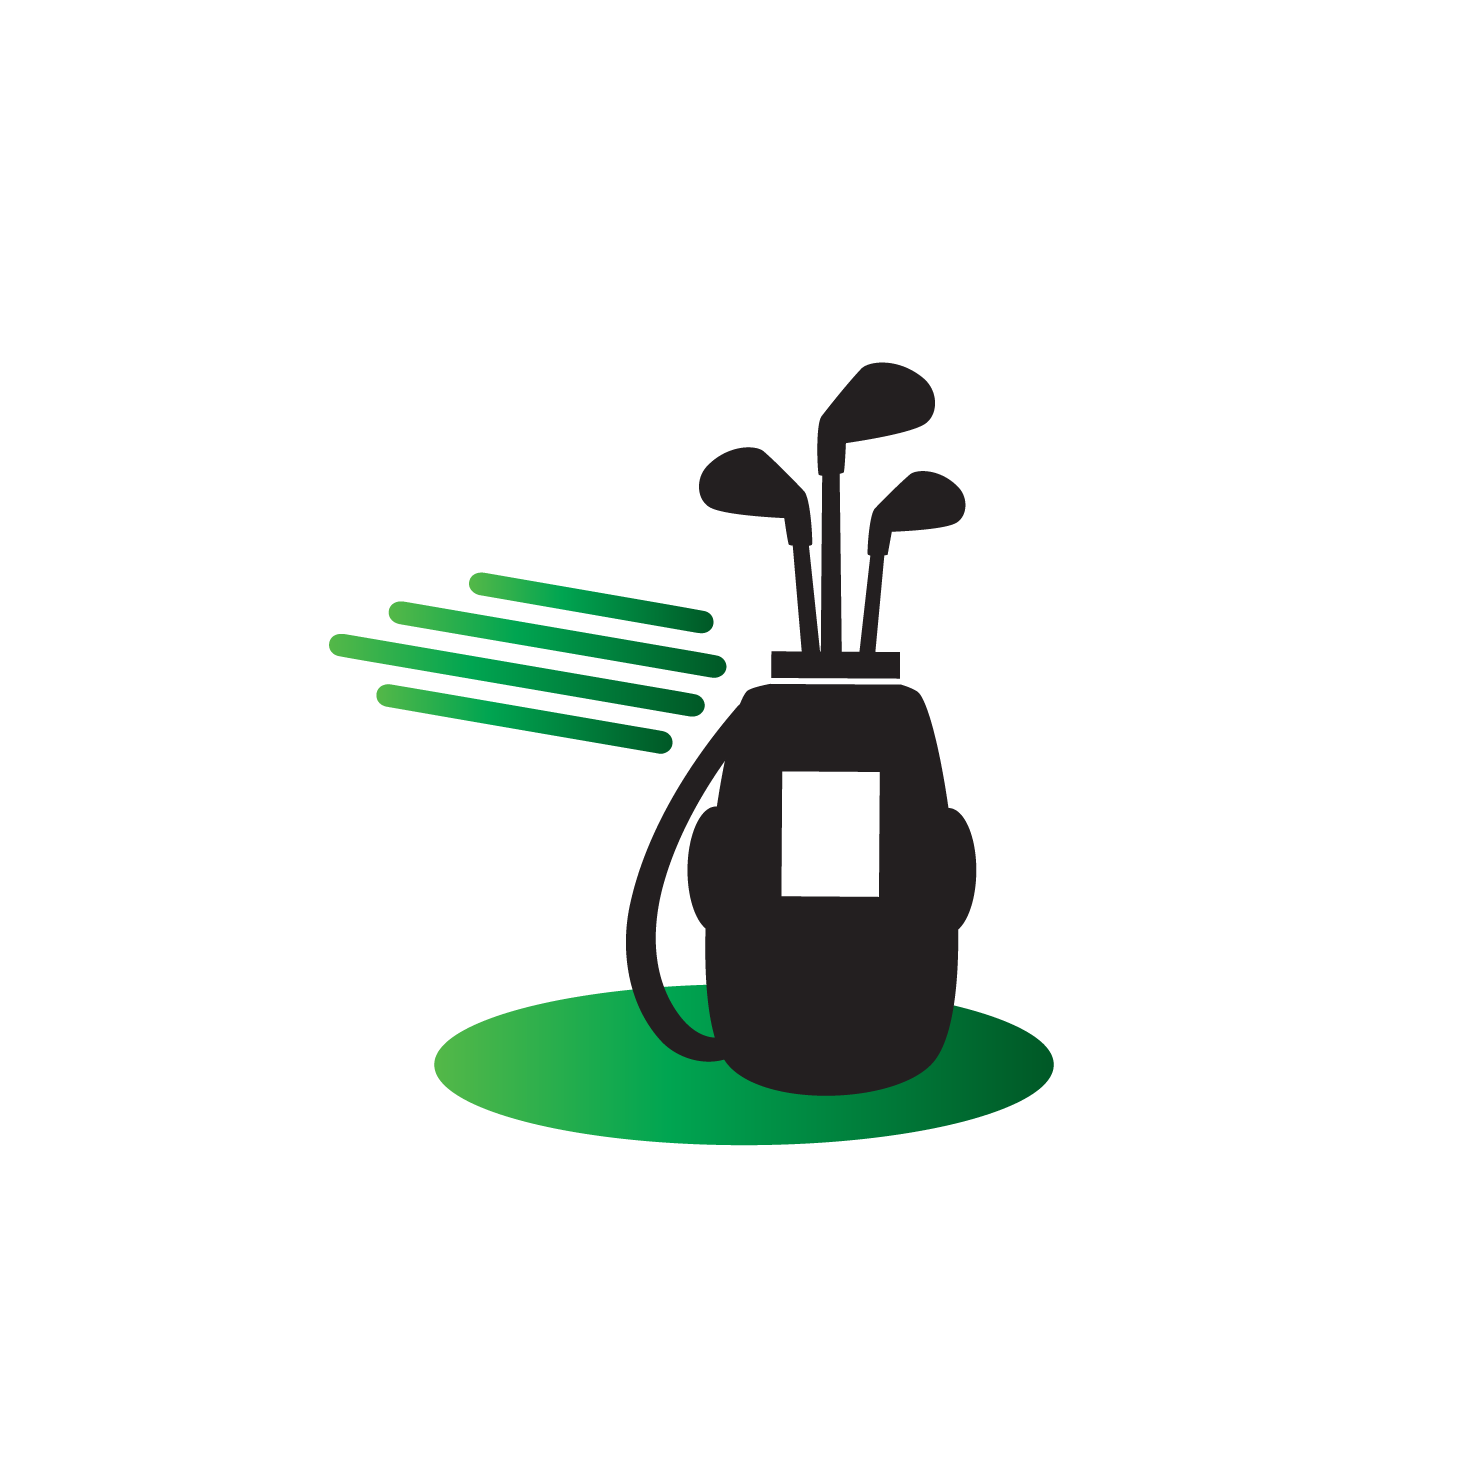 Club clipart golf game. Clevergolf from thinkers to